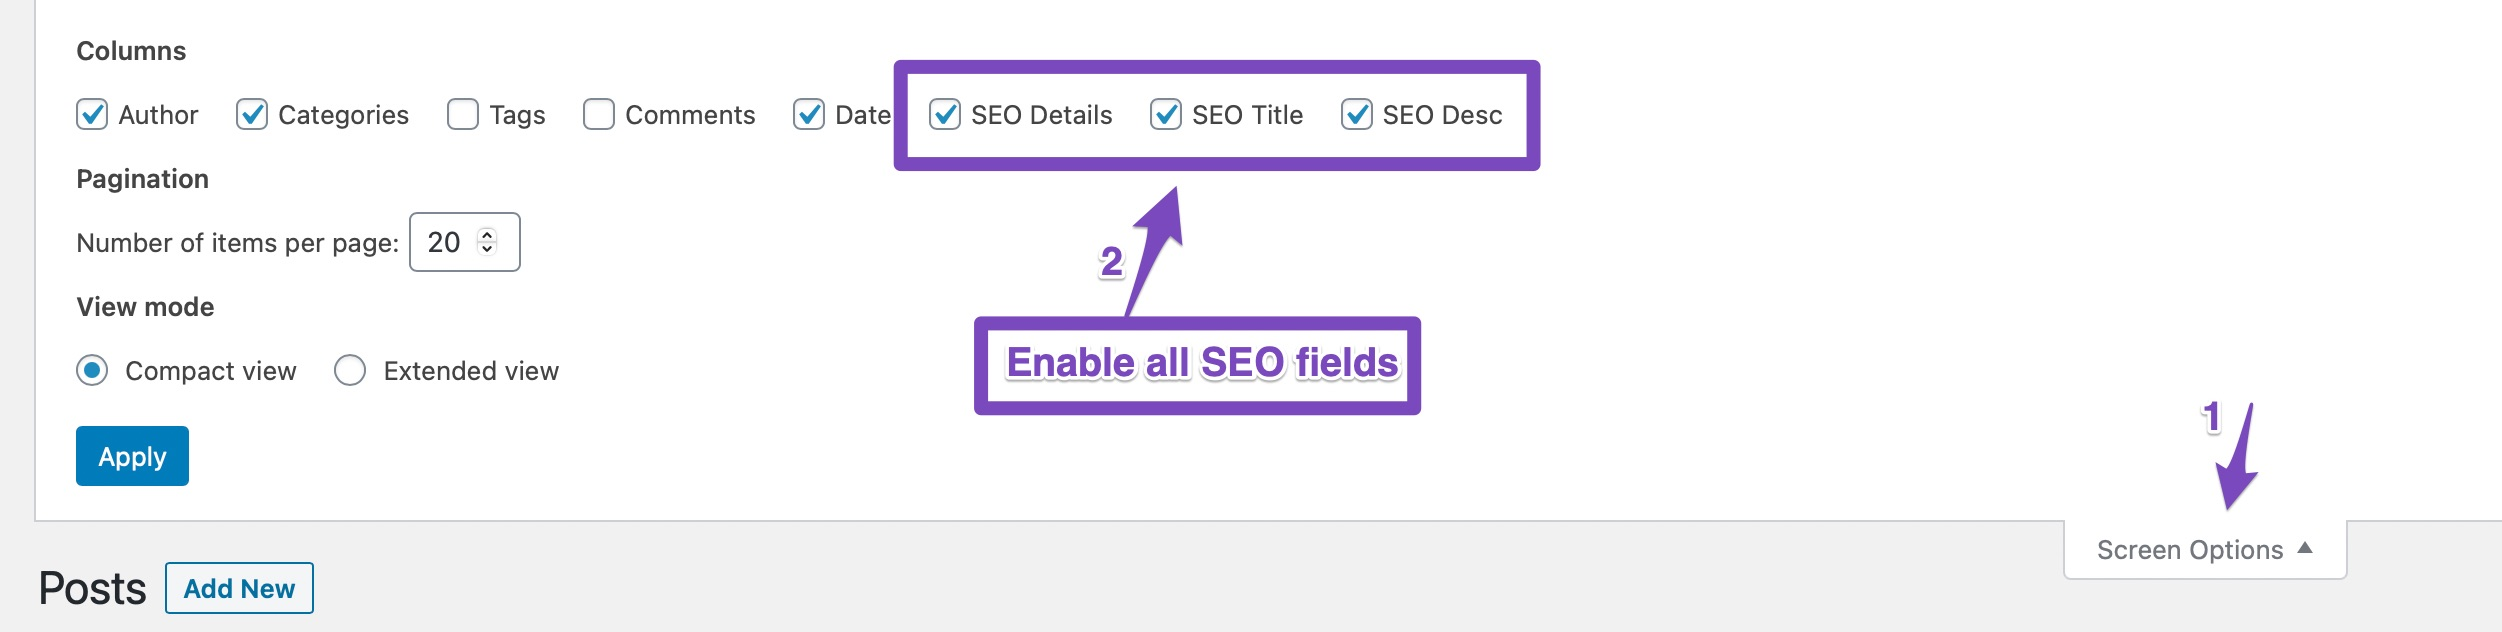 Enable All SEO Fields From Page Settings